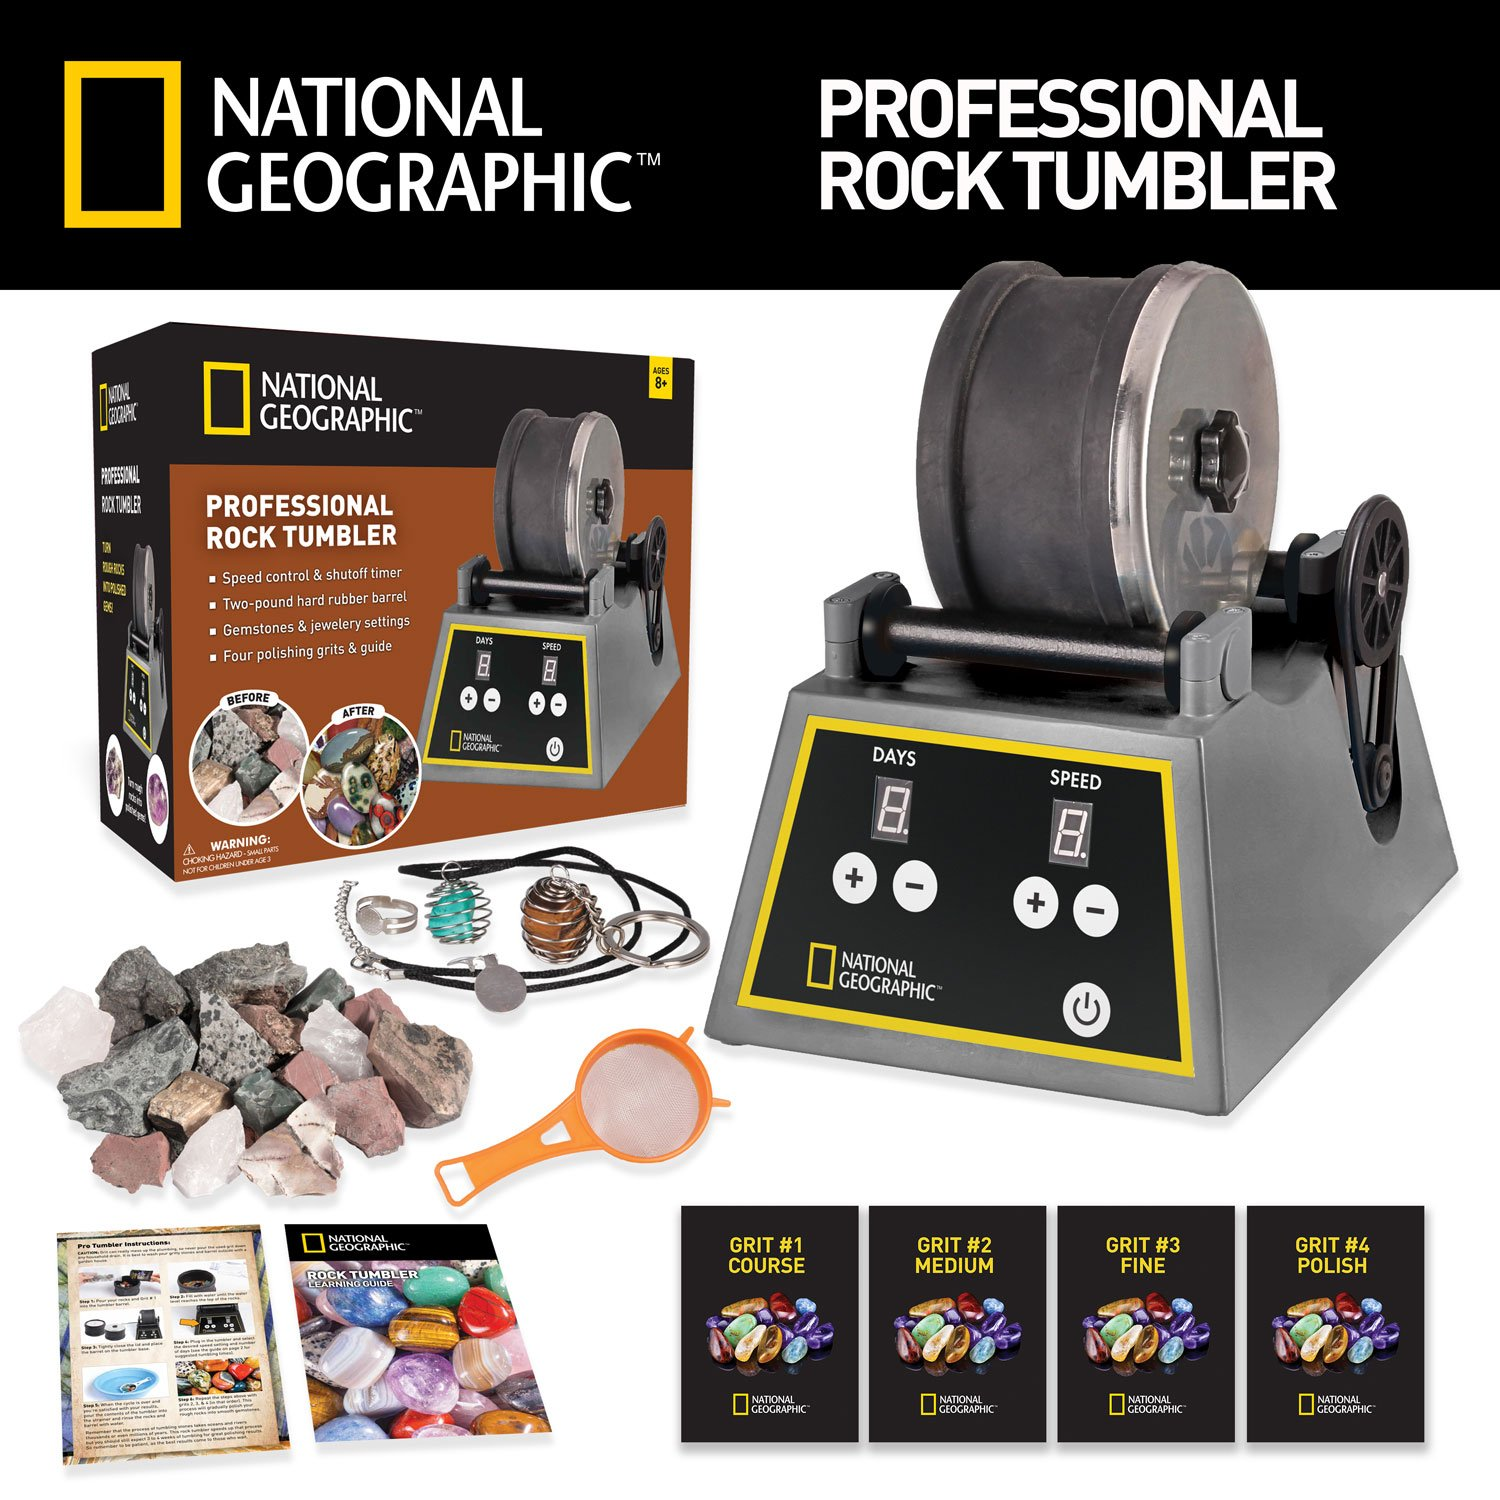 Professional Rock Tumbler by NATIONAL GEOGRAPHIC (Improved Quality Sept. 2016) by National Geographic (Image #2)